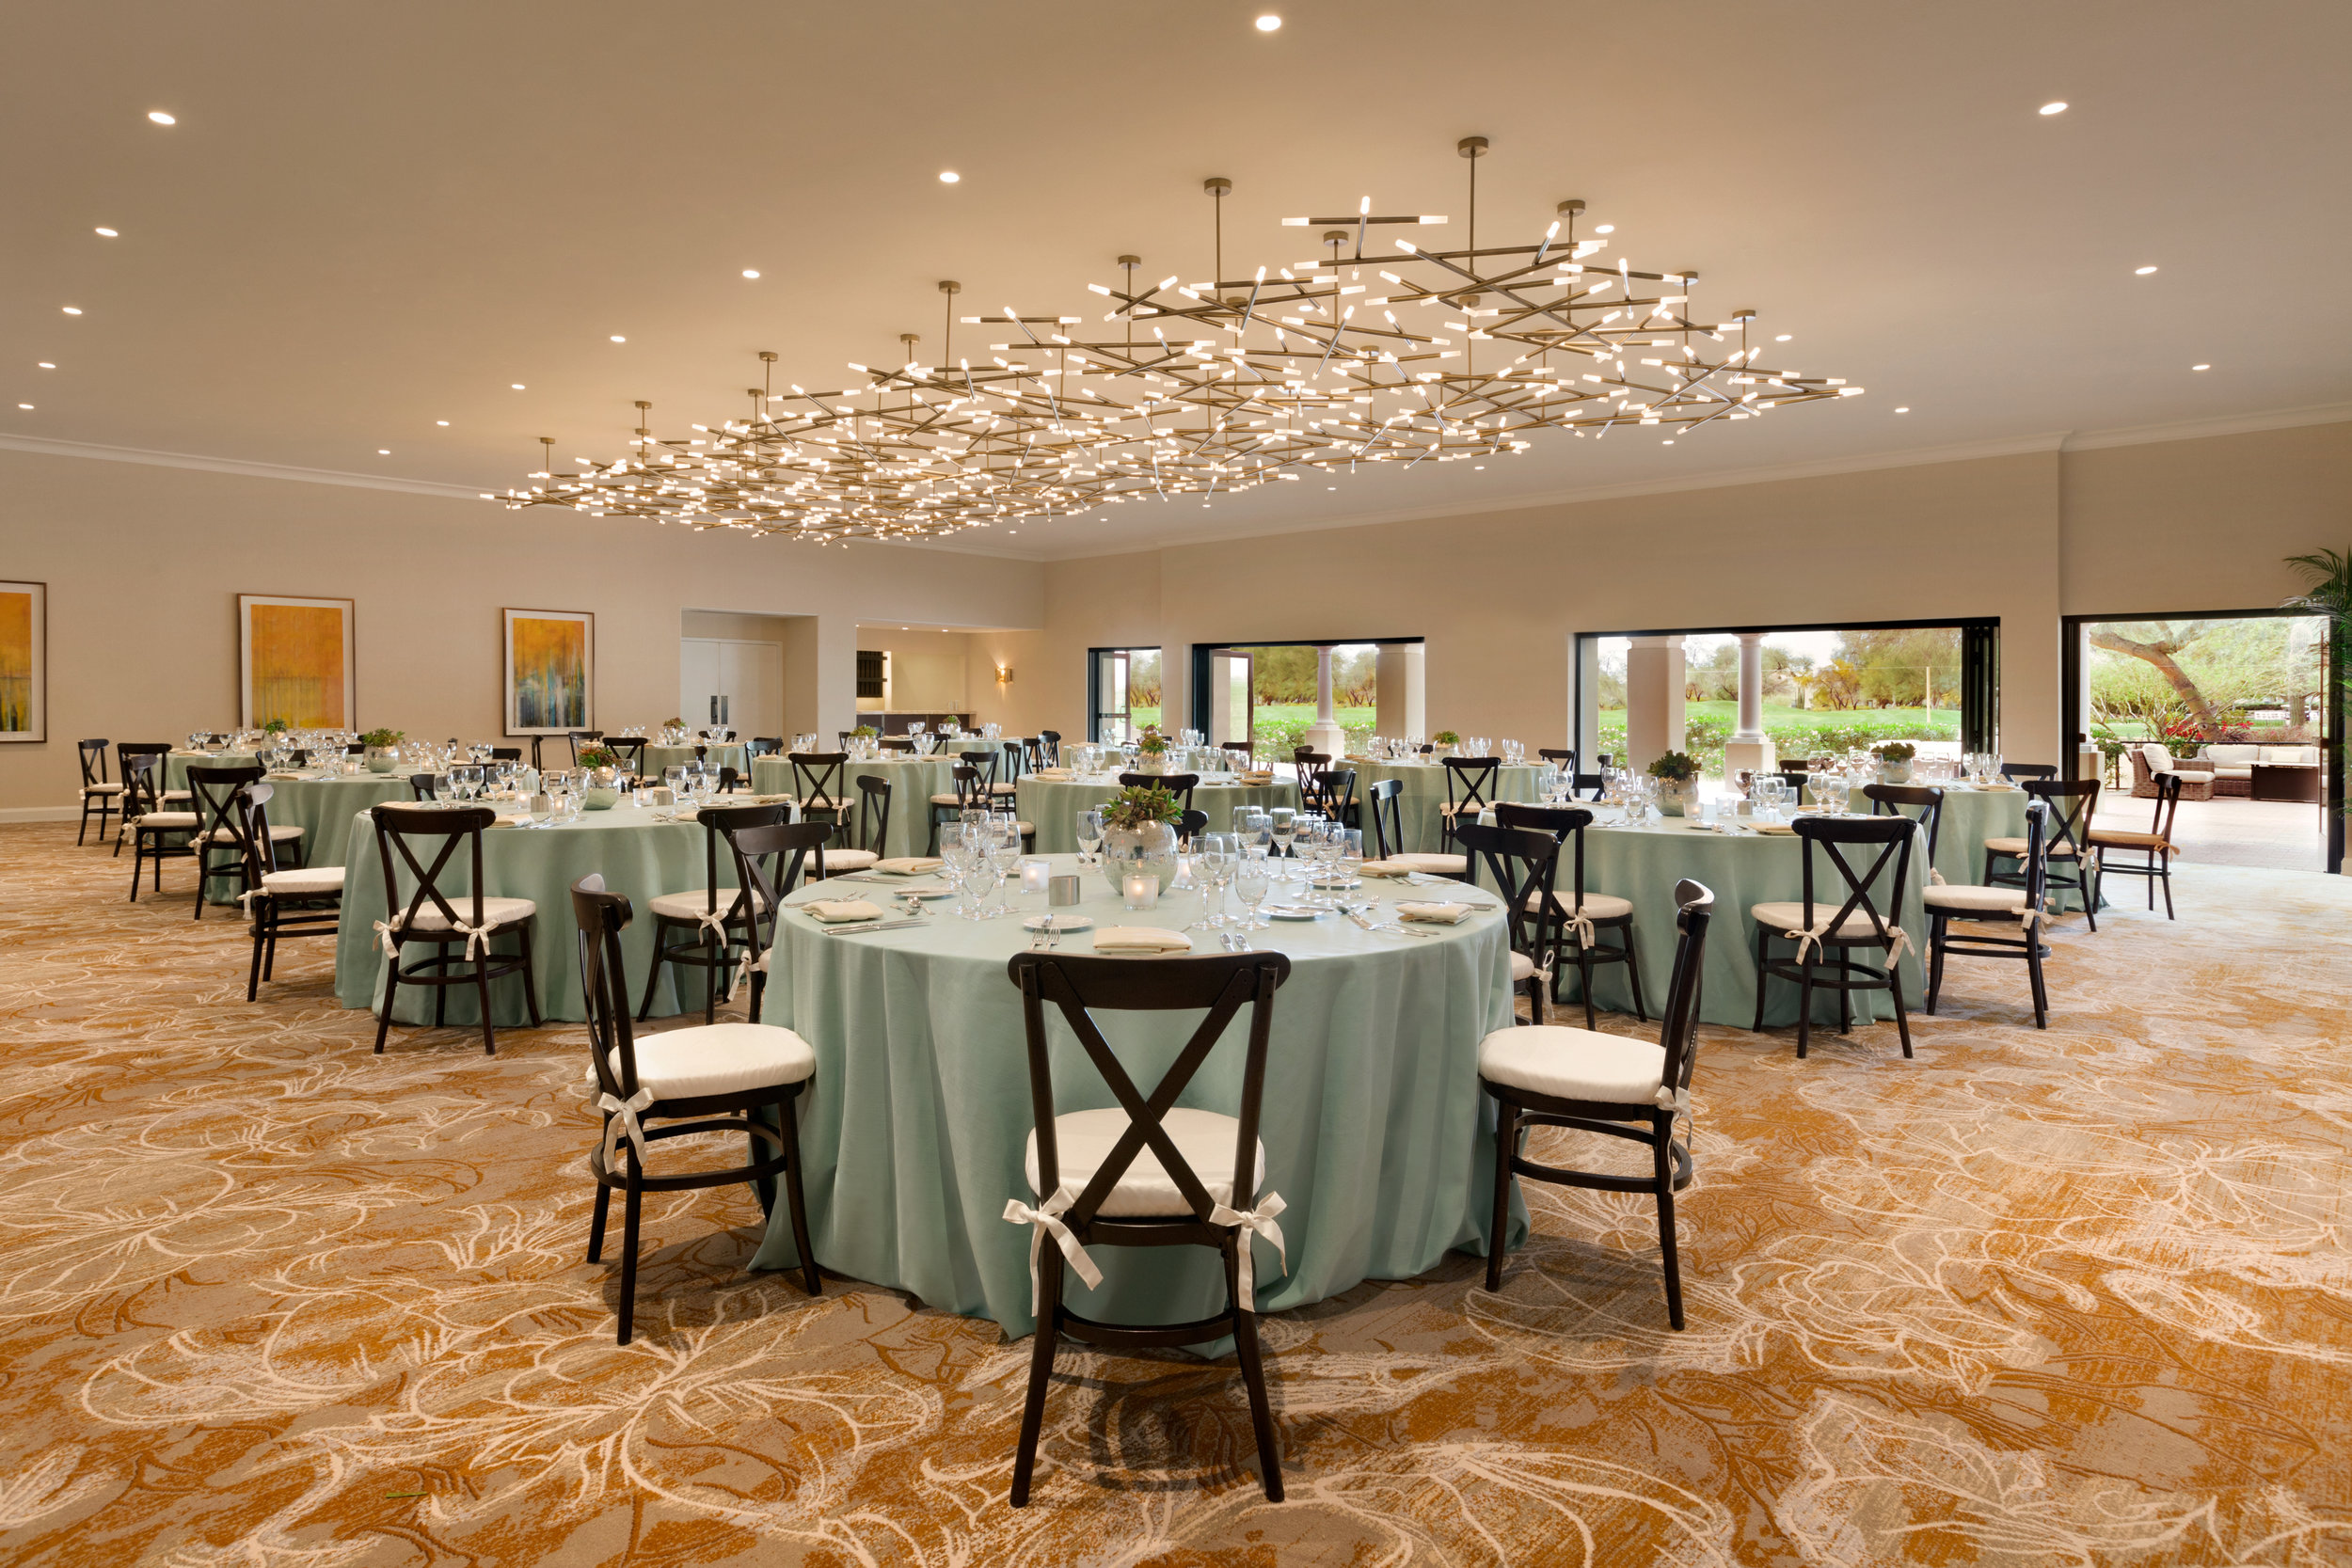 Fairmont Scottsdale - Fairmont Gold Meeting Room - 1268386.jpg